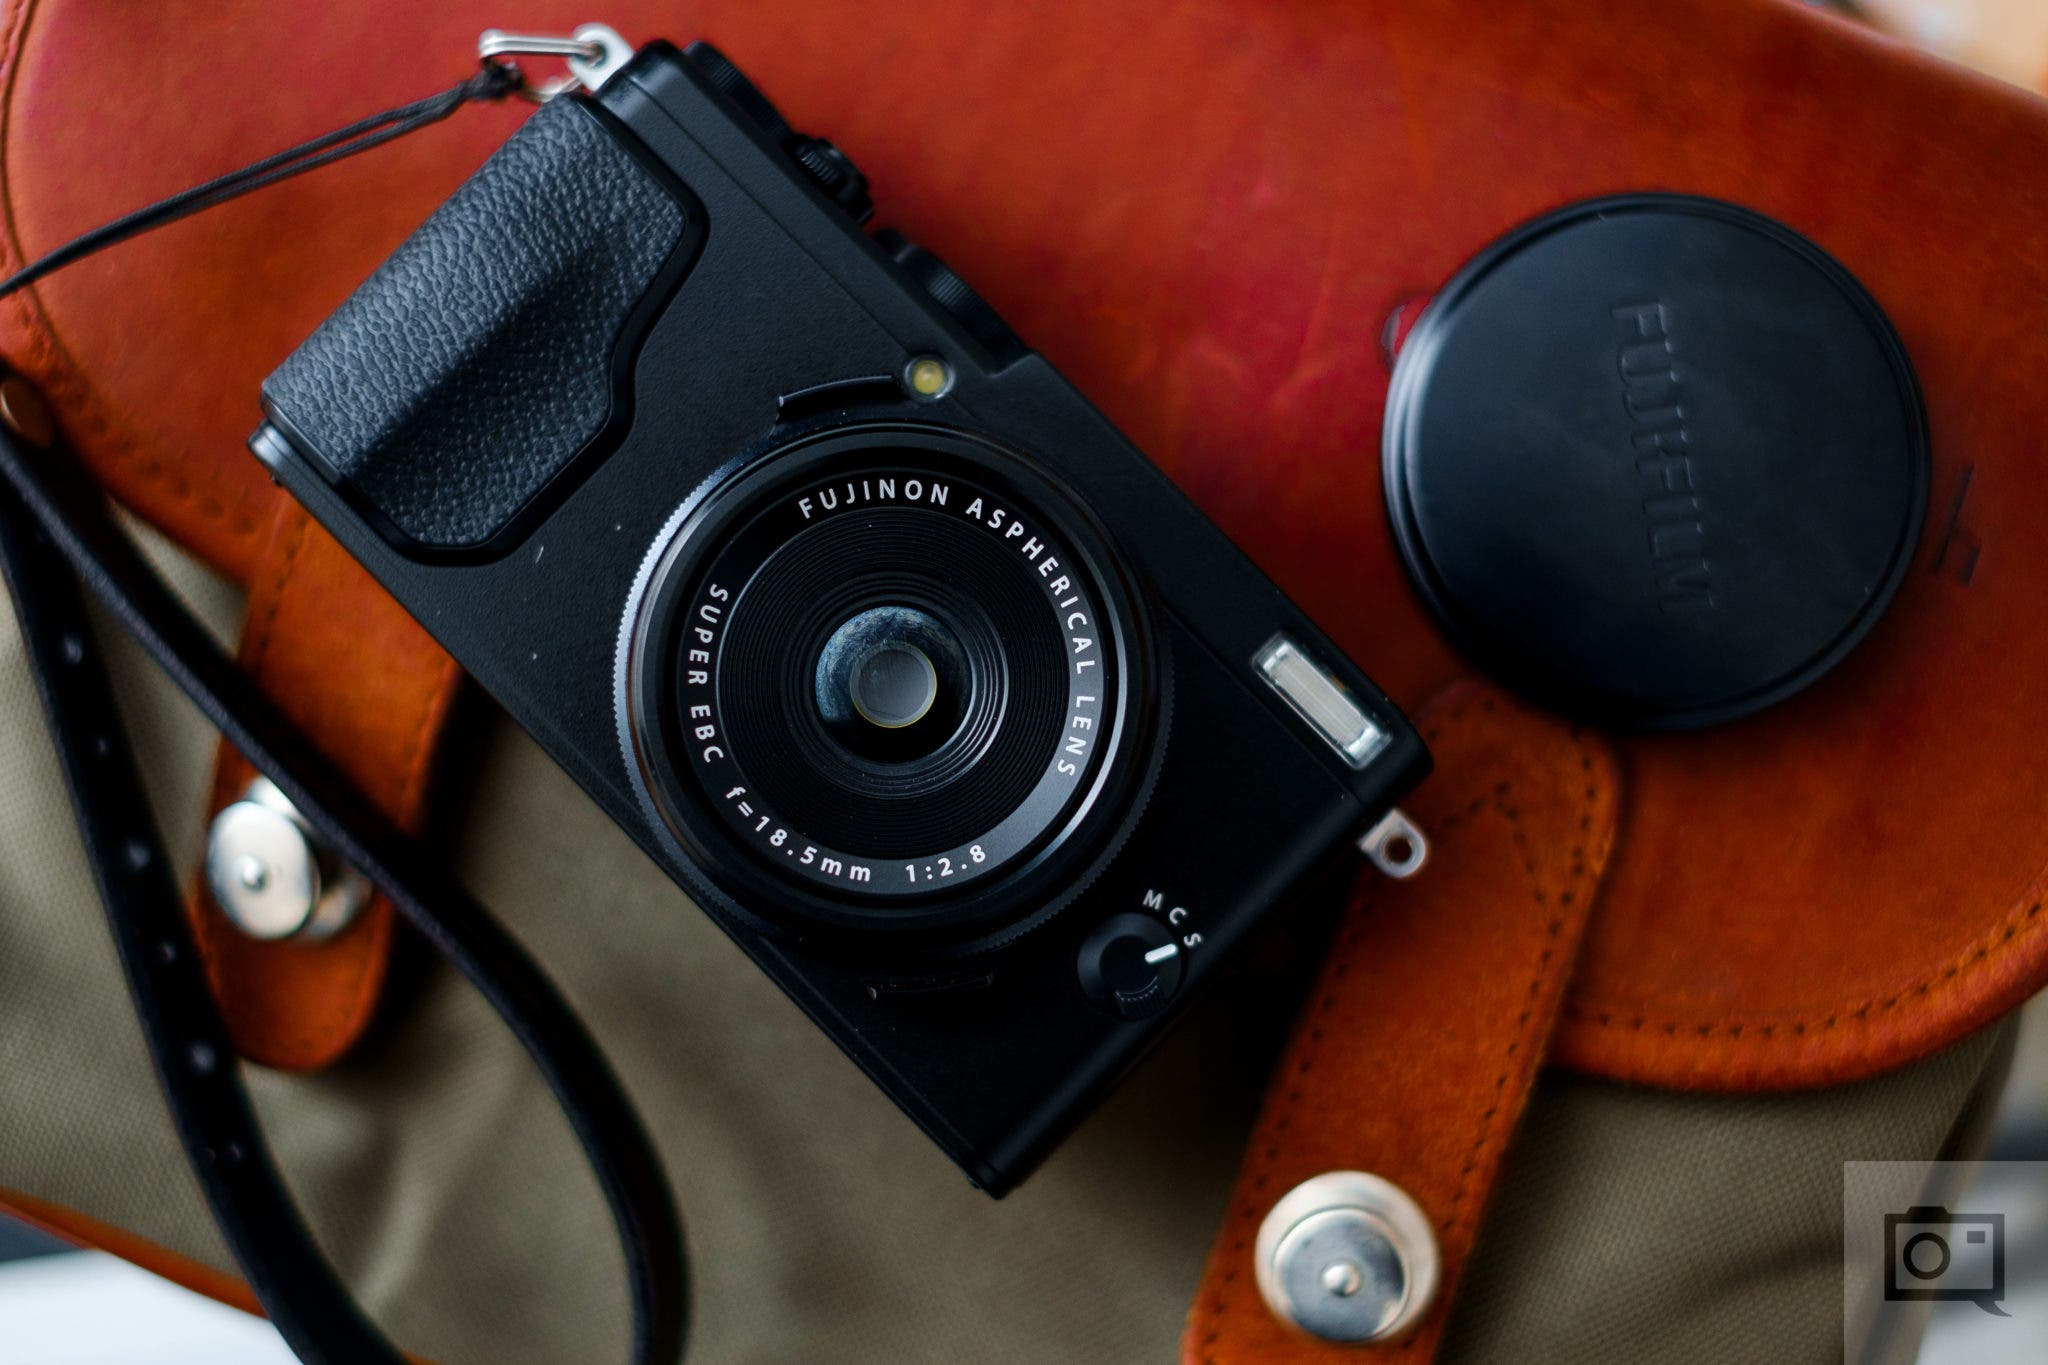 Fujifilm May Have a New Compact Coming, but Not an X70 Replacement